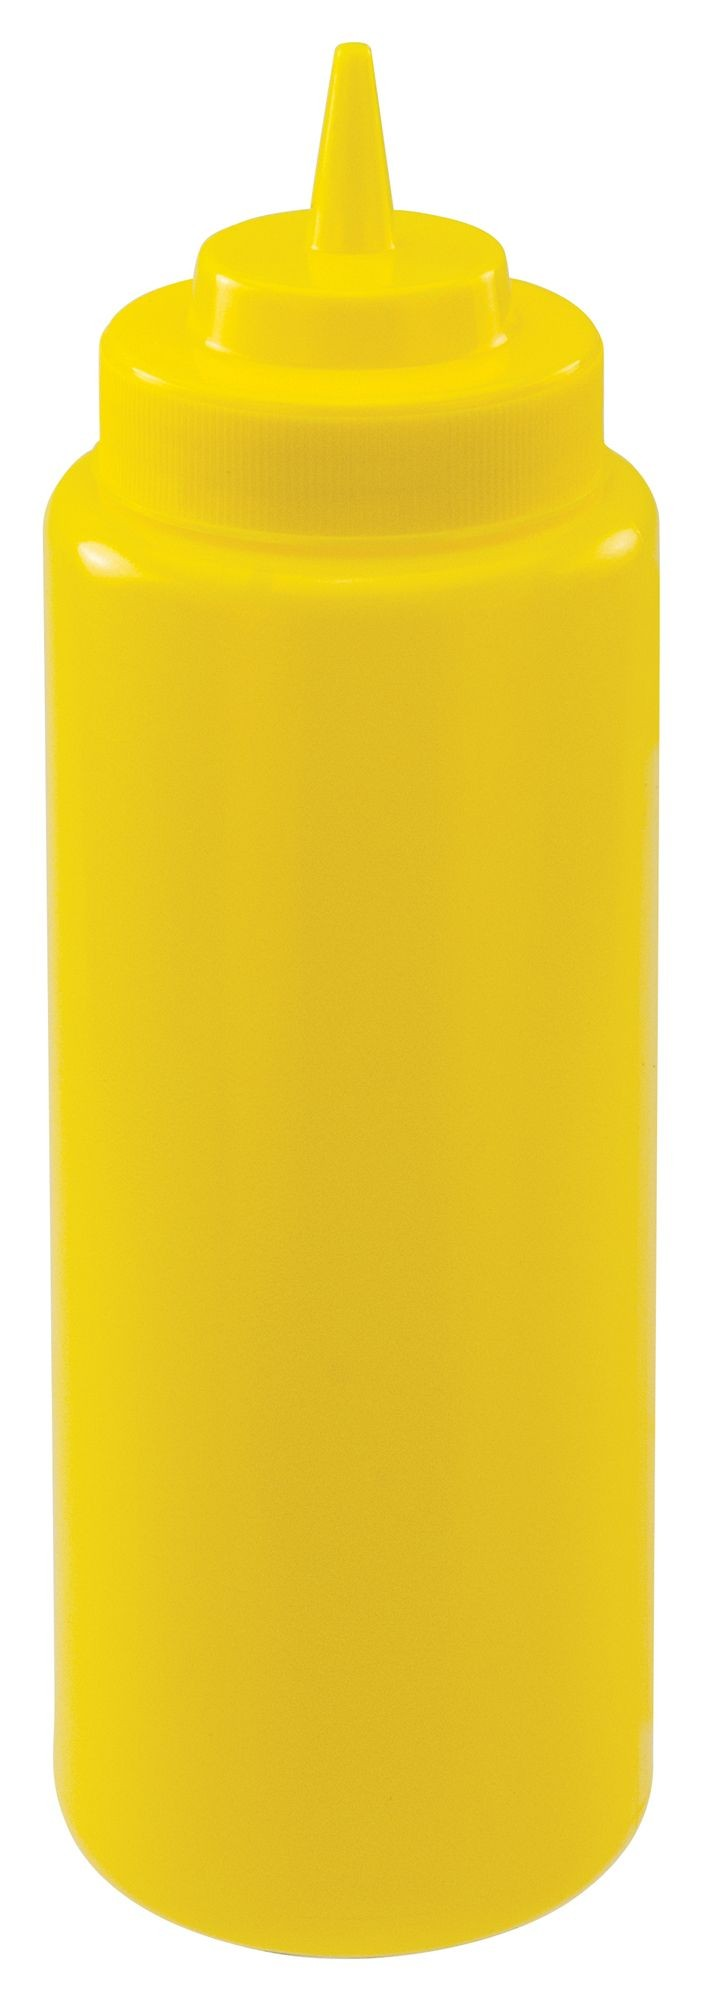 Yellow Plastic 32 Oz. Wide-Mouth Squeeze Bottle